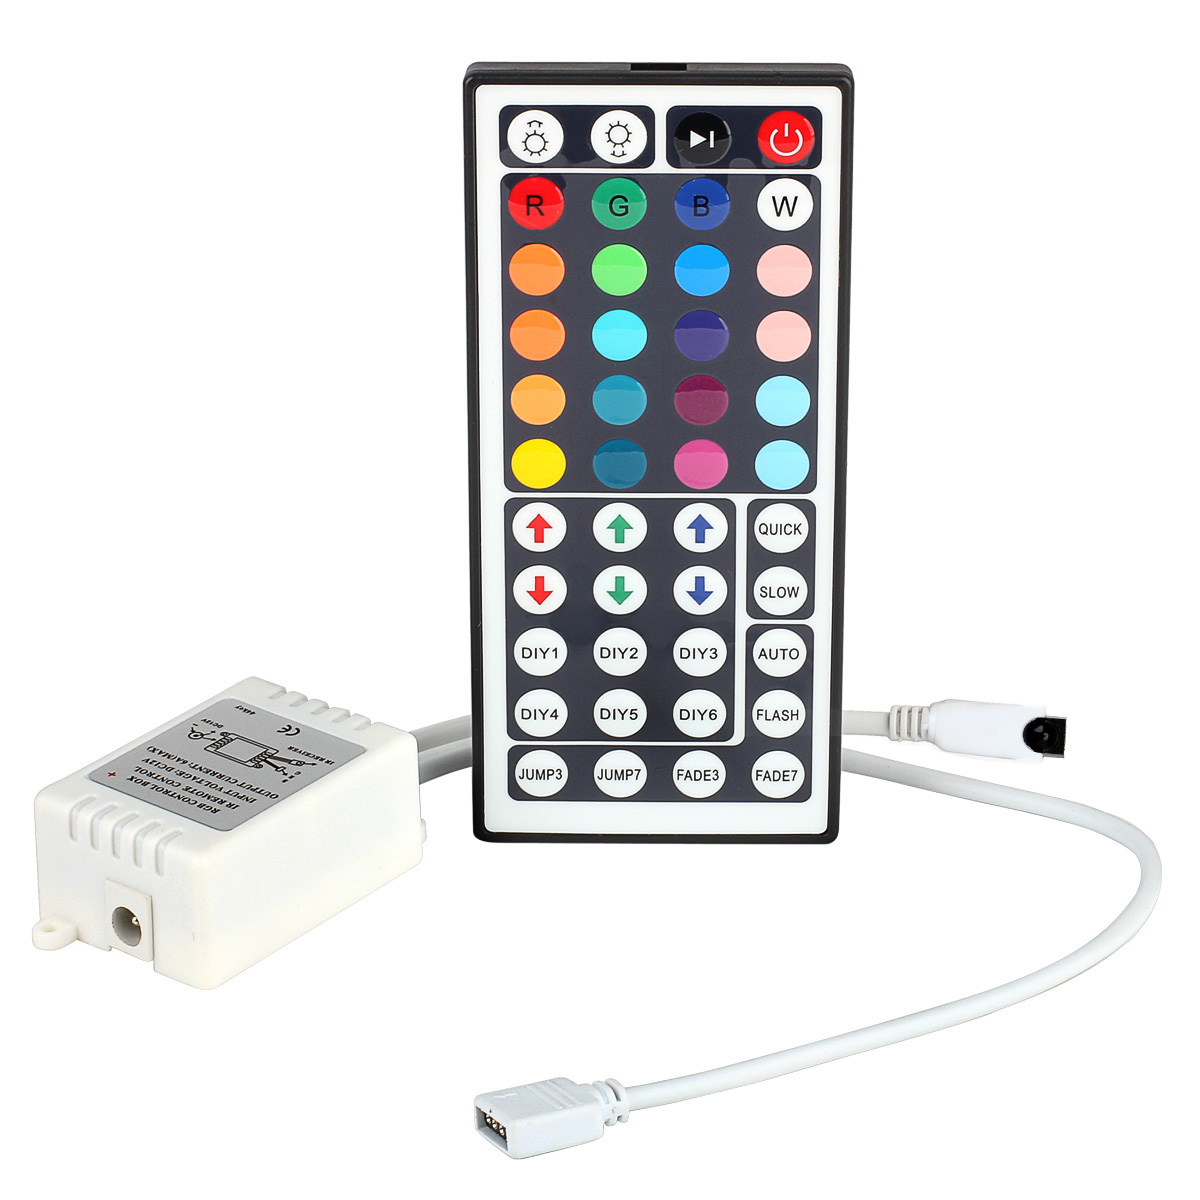 SUPERNIGHT IR Remote Controller 44 Keys for 5050 SMD RGB LED Light Strip